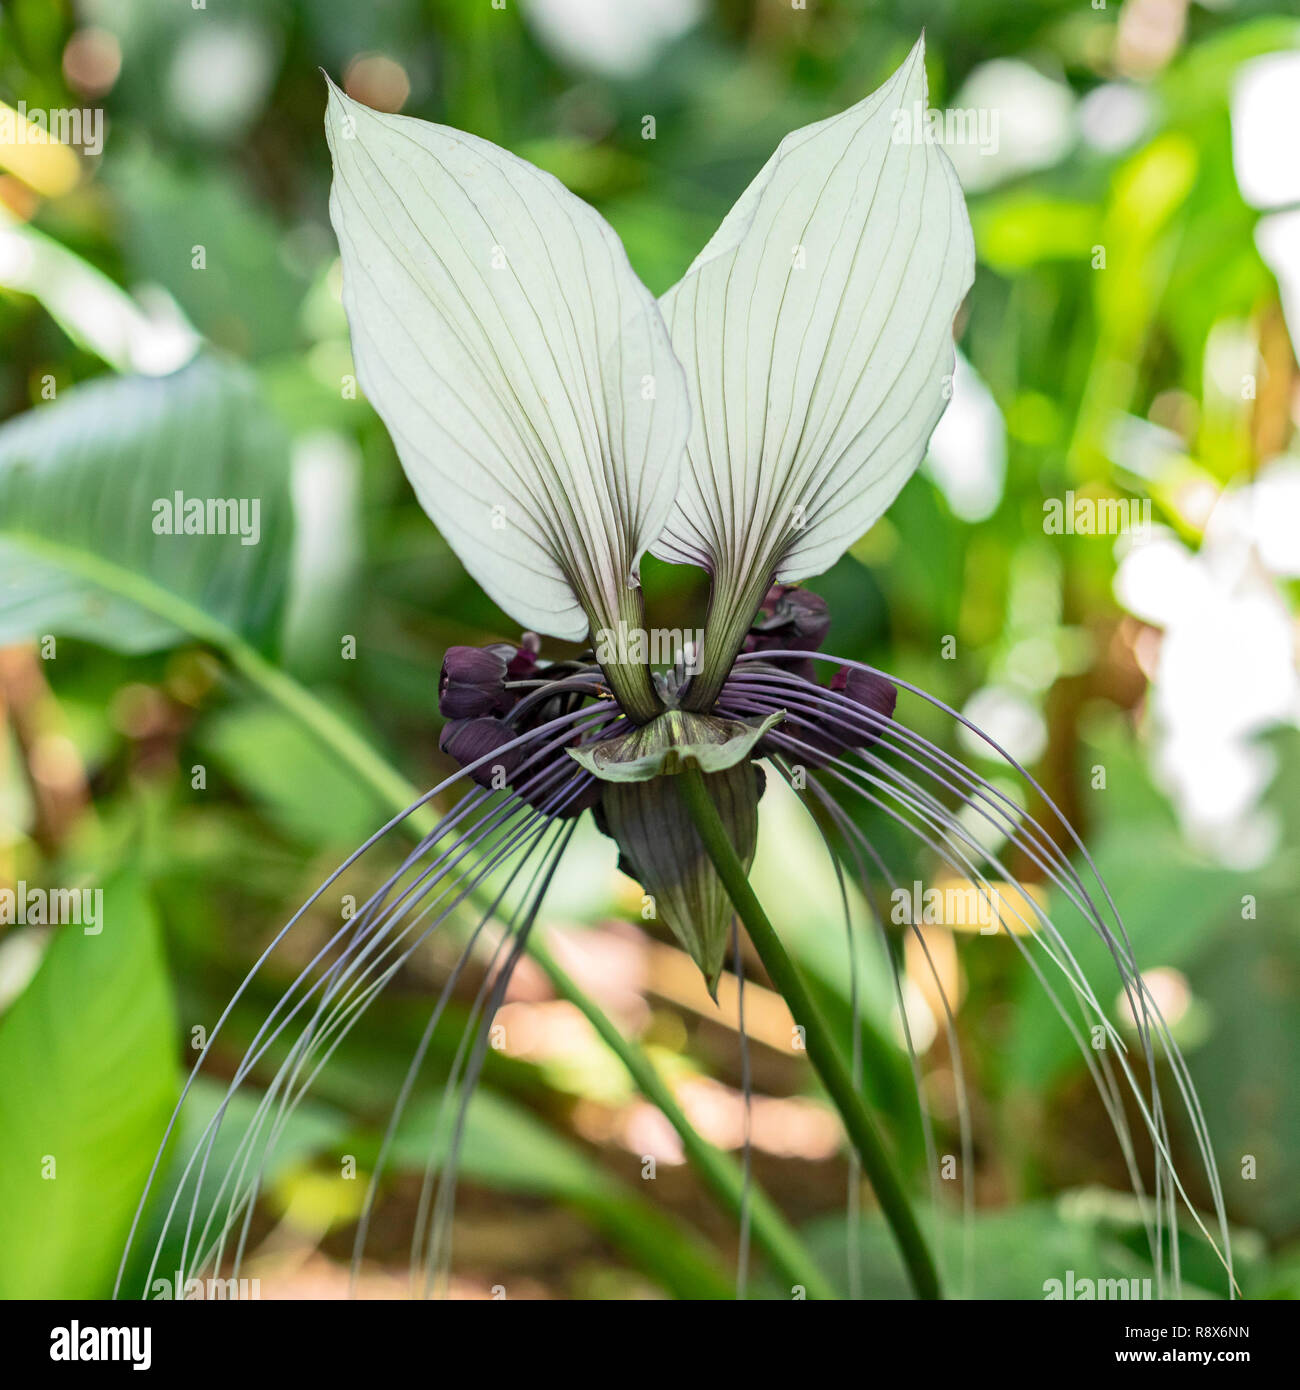 White Bat Flower Stock Photos White Bat Flower Stock Images Alamy